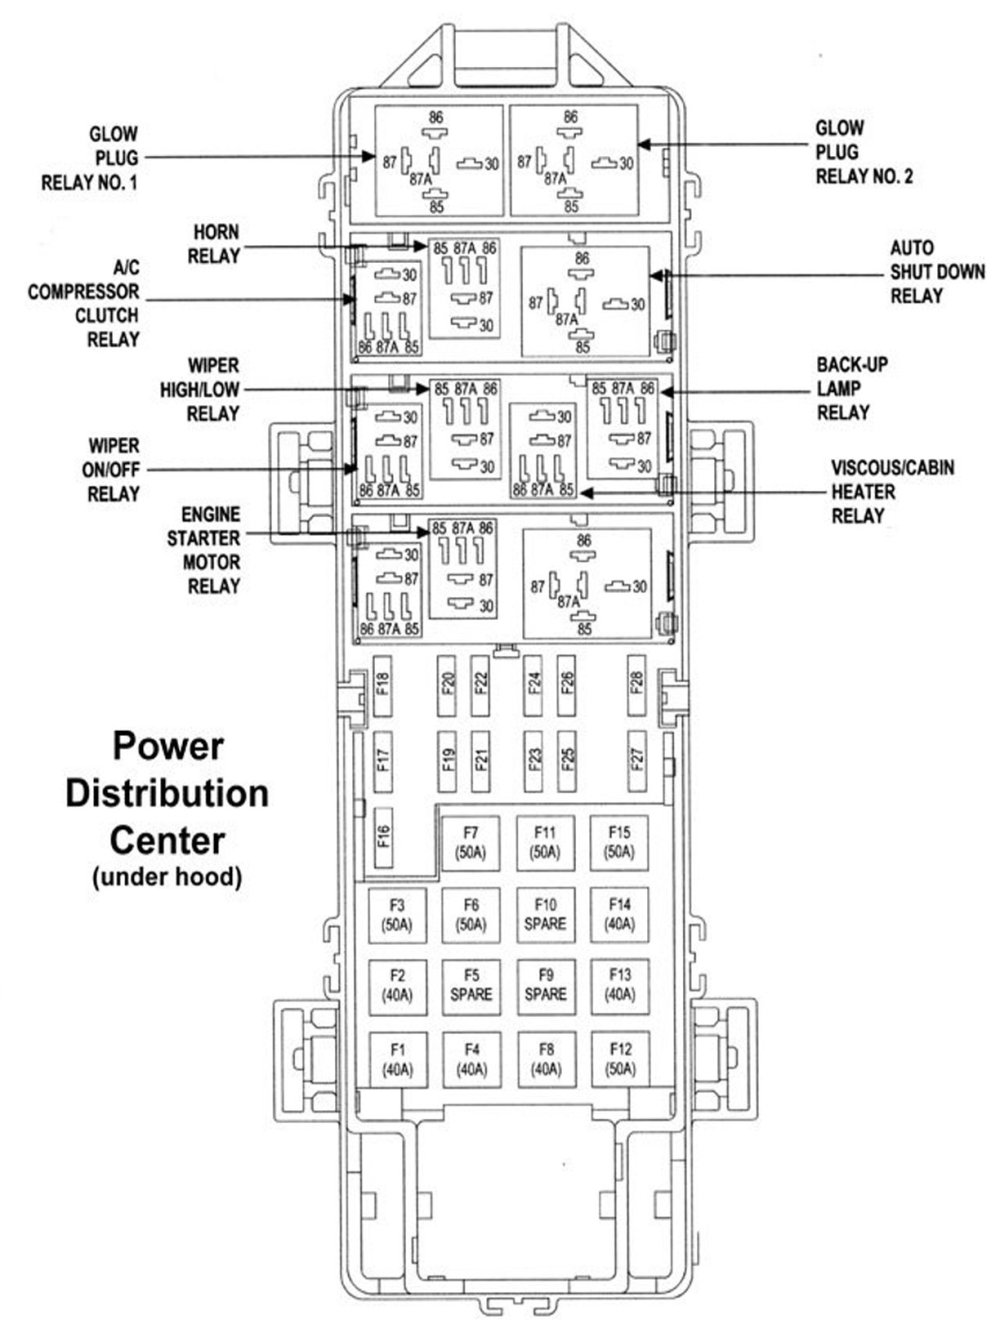 medium resolution of fuse box diagram 2004 jeep wrangler sport wiring diagram databasejeep grand cherokee wj to fuse box